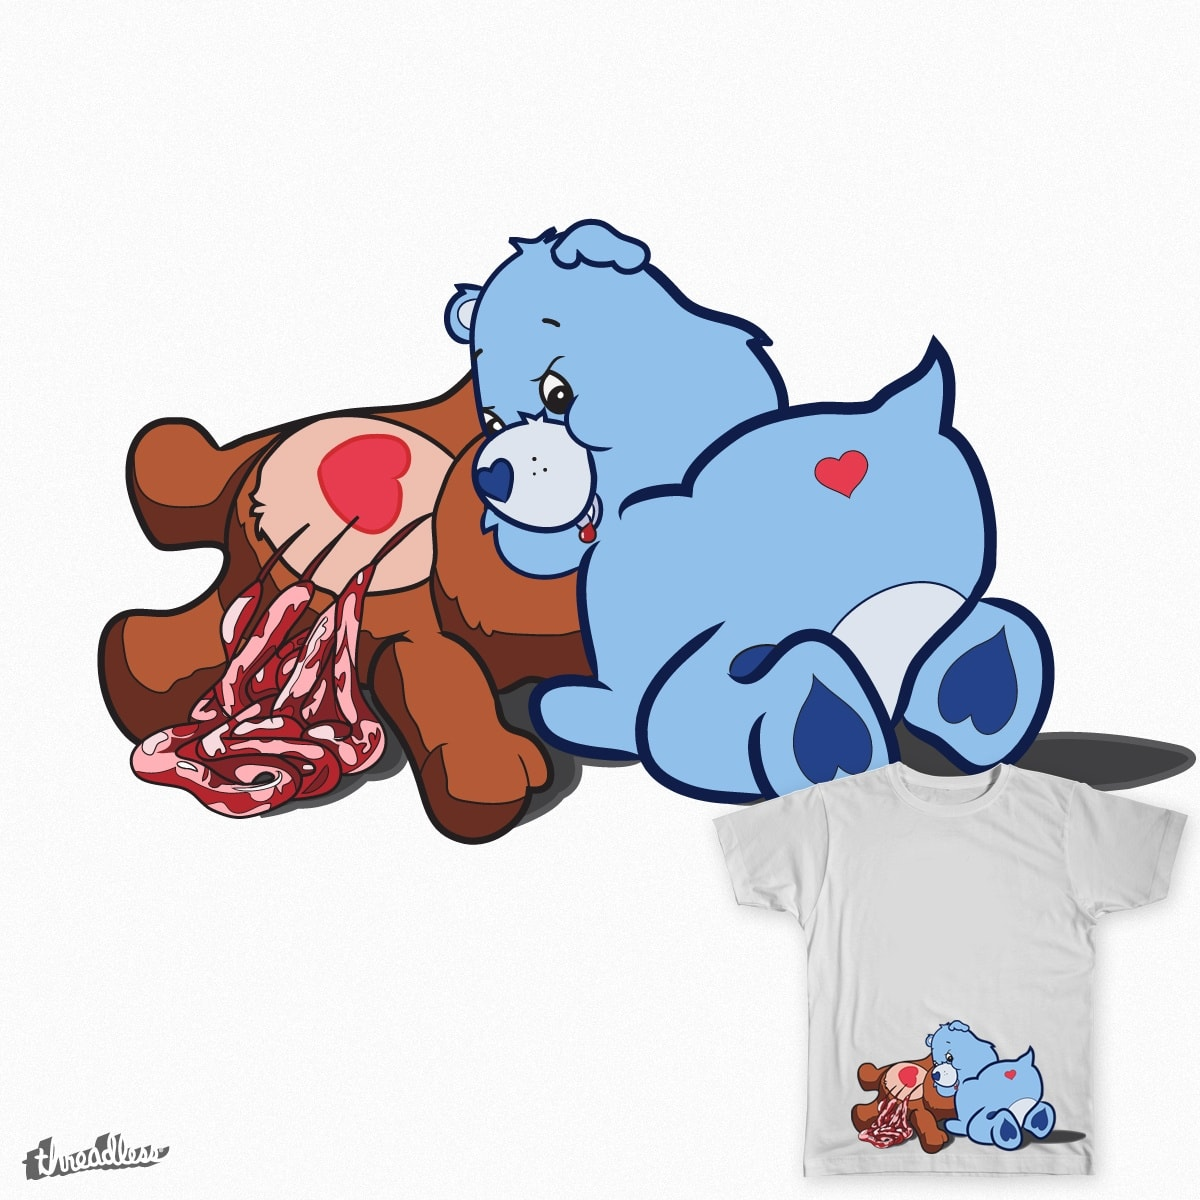 Grisly Grumpy by Graphicali on Threadless